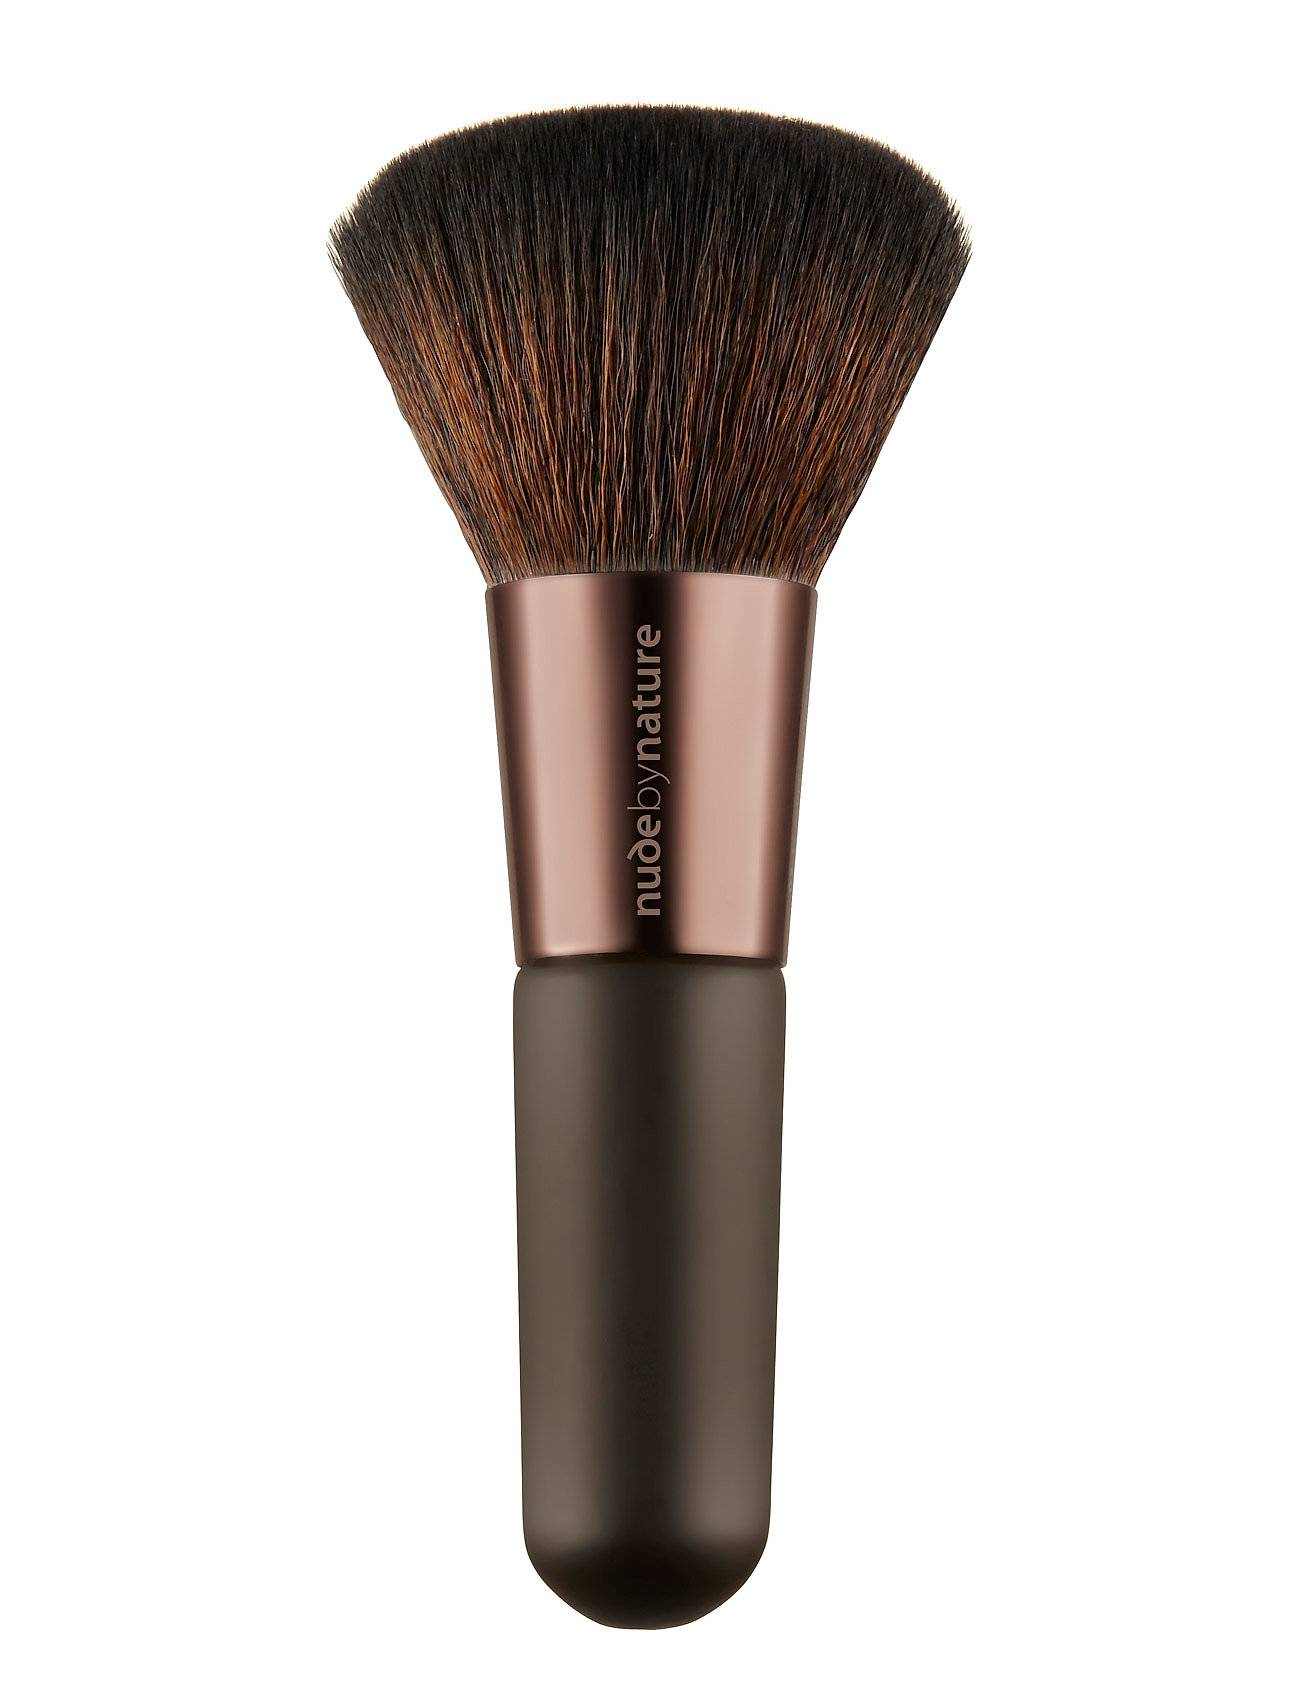 Nude by Nature Brushes 03 Flawlessbrush Beauty WOMEN Makeup Makeup Brushes Face Brushes Nude Nude By Nature